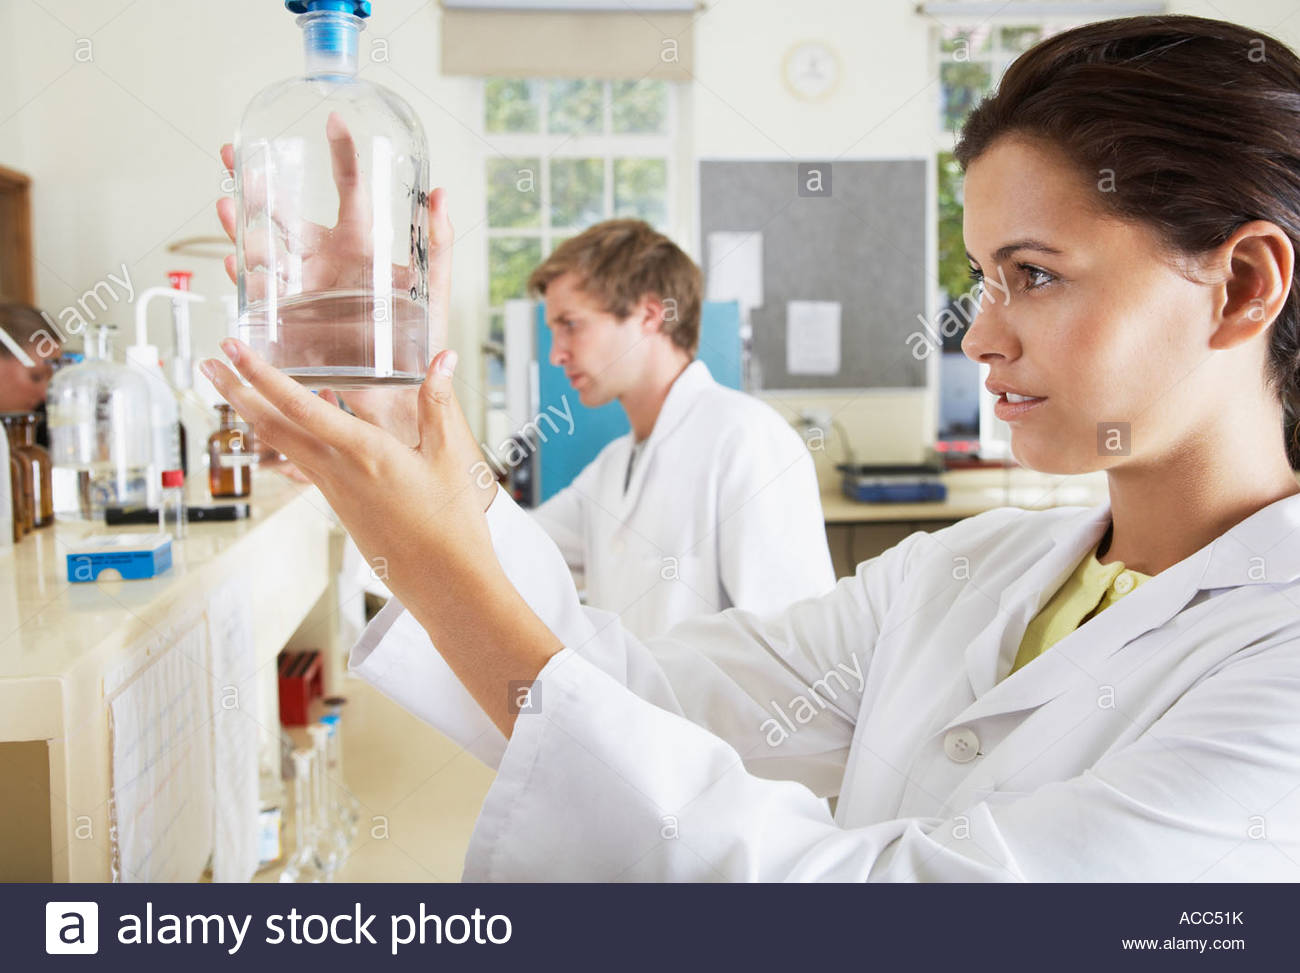 Woman in a laboratory measuring a liquid with one man in the background - Stock Image